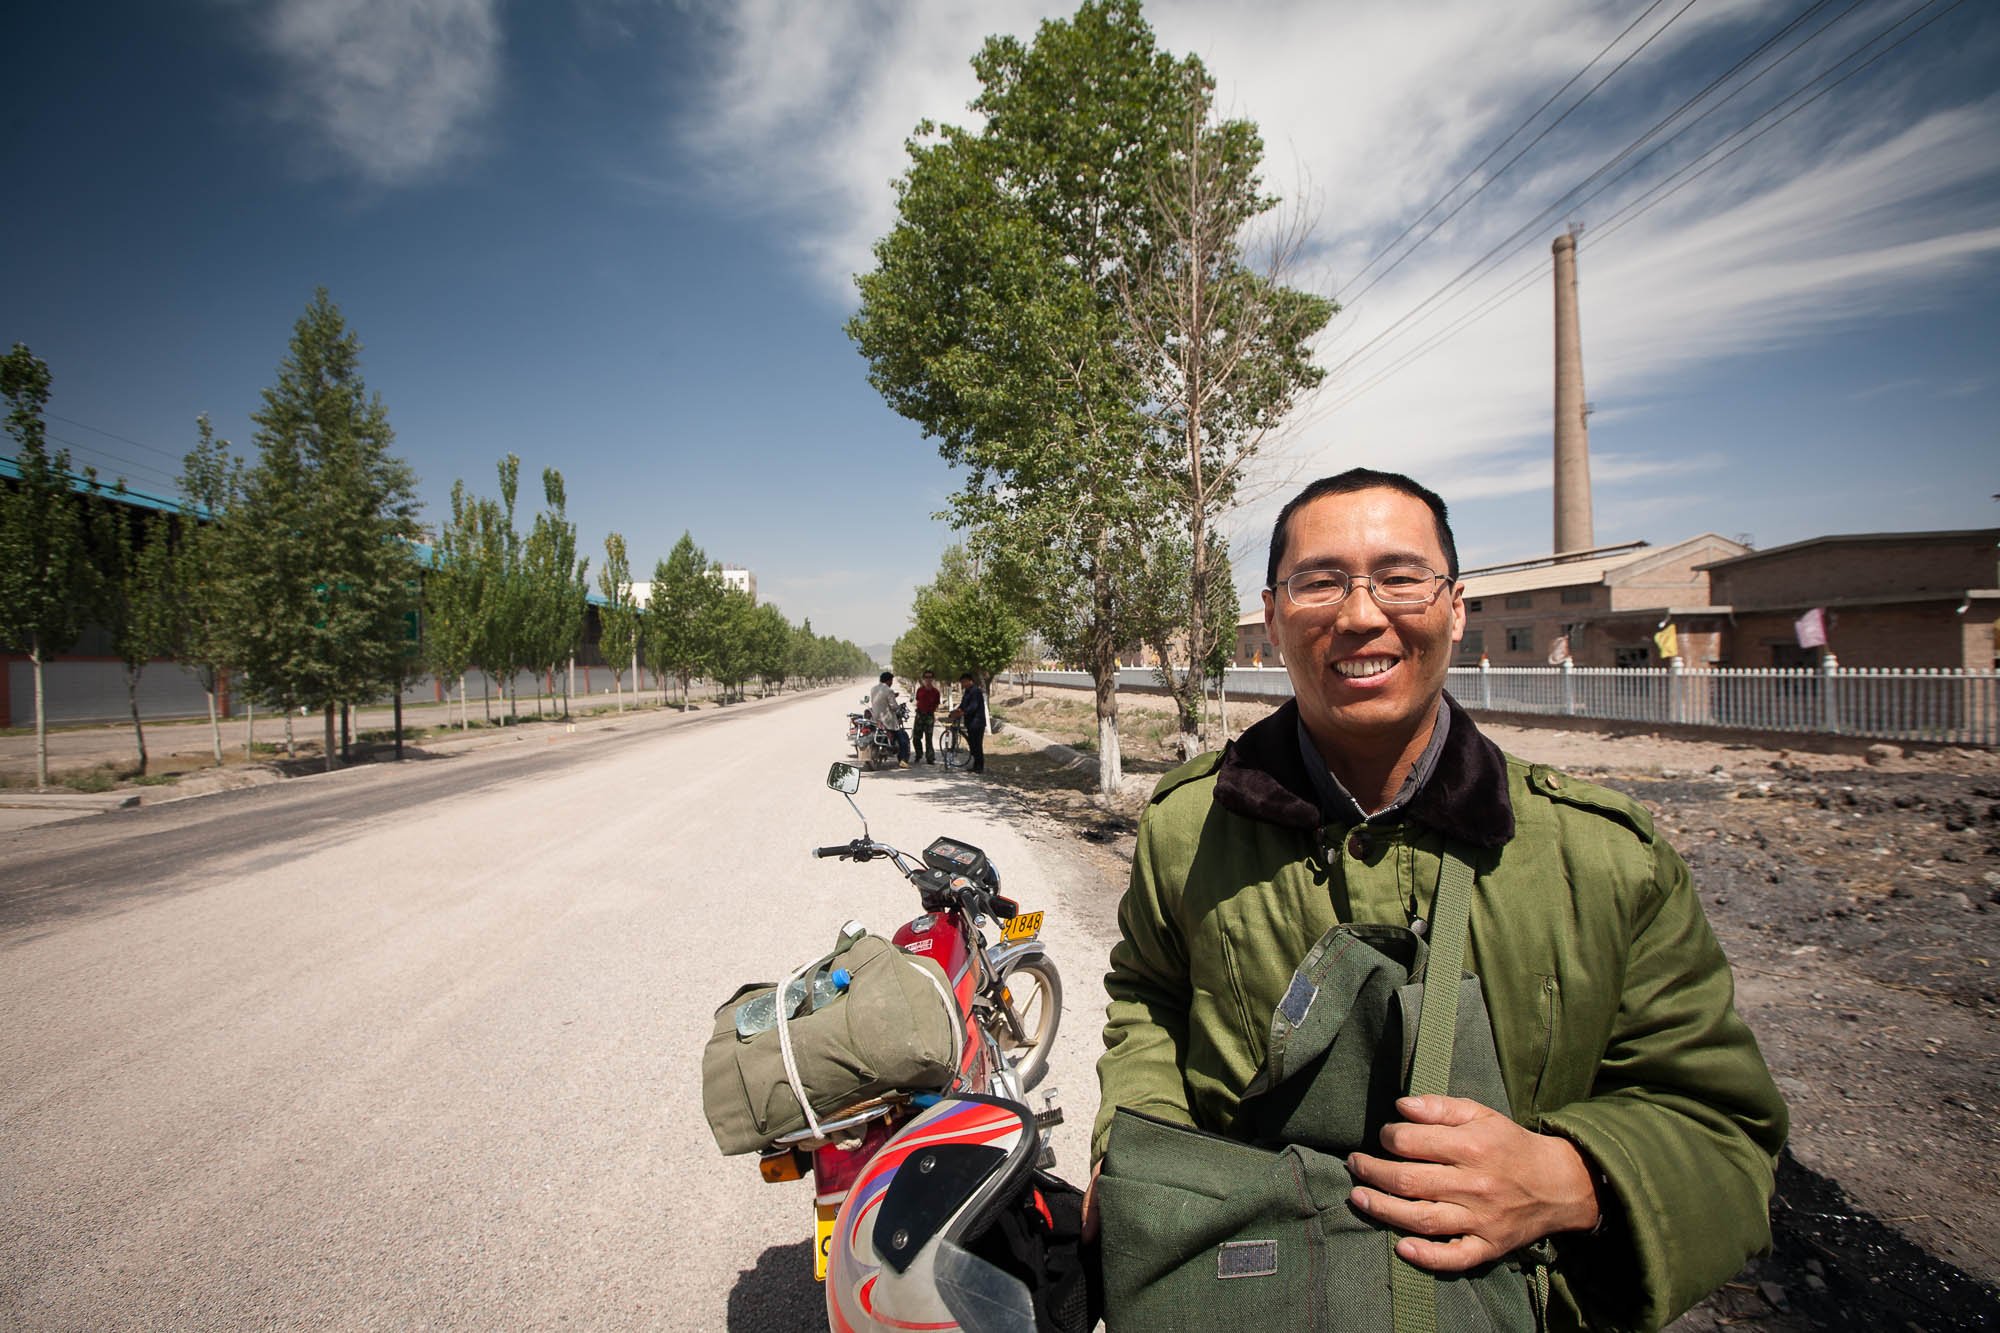 Chen Ping stopped his motorbike for a chat